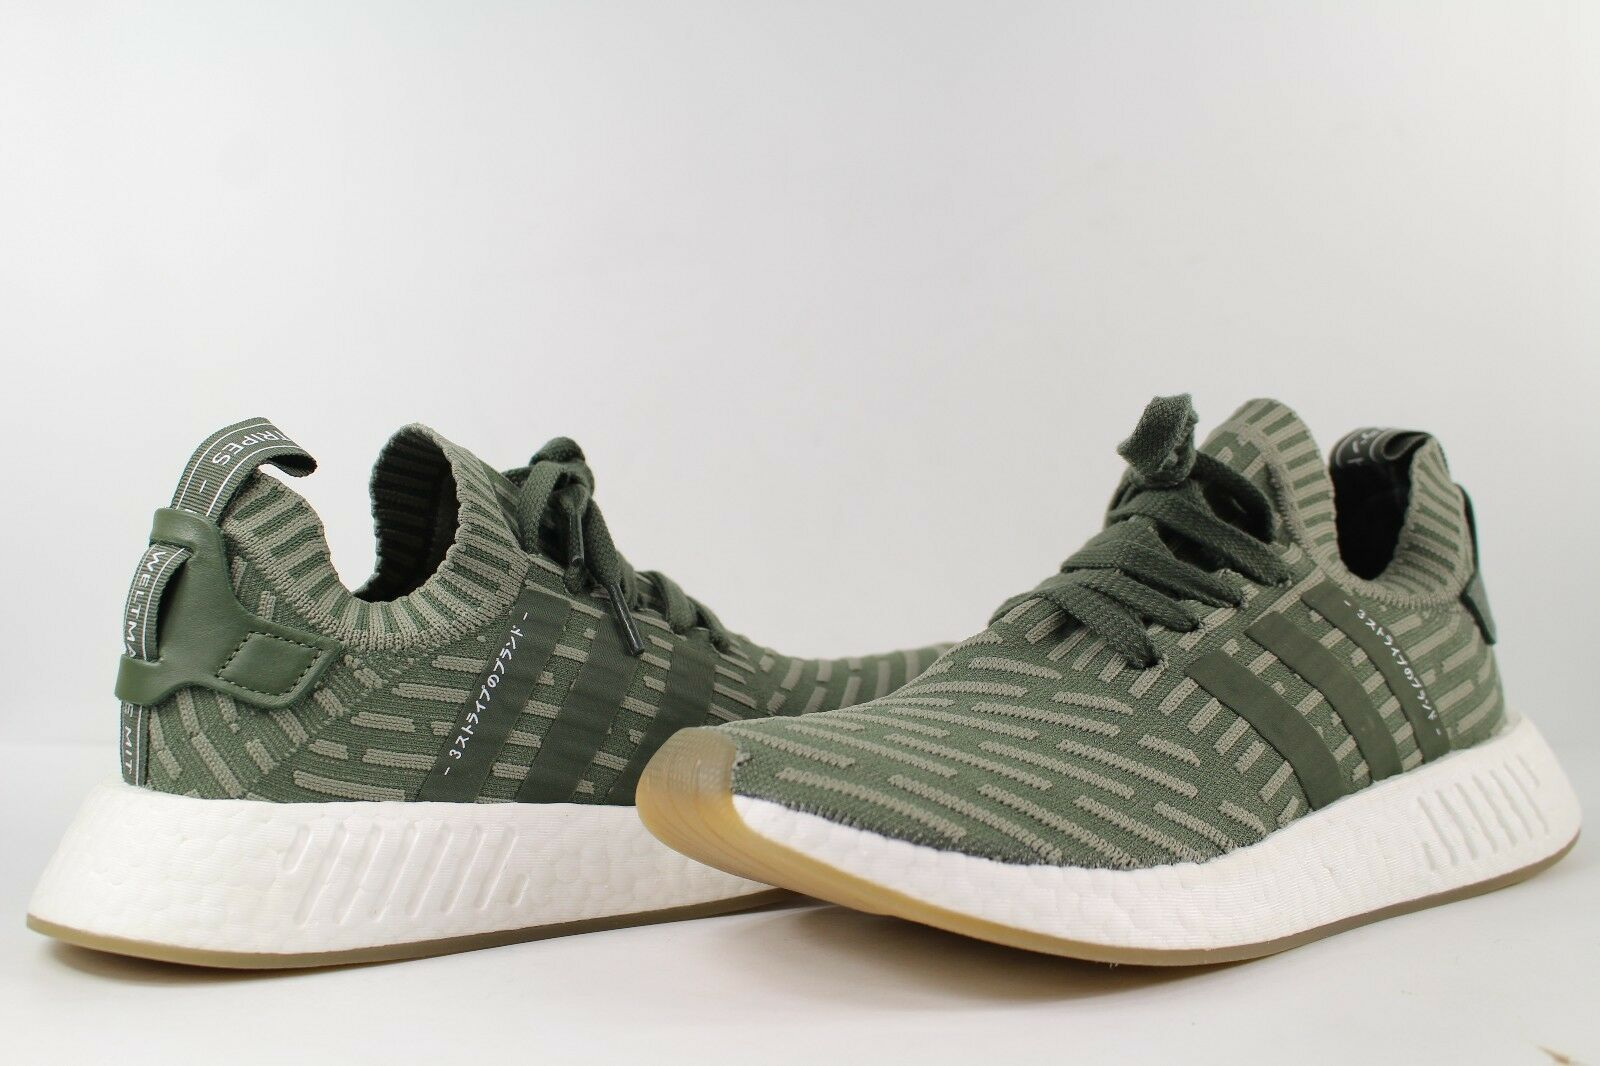 adidas NMD R2 Primeknit Olive Green White Pink Gum Sole Size 8.5 BY9953